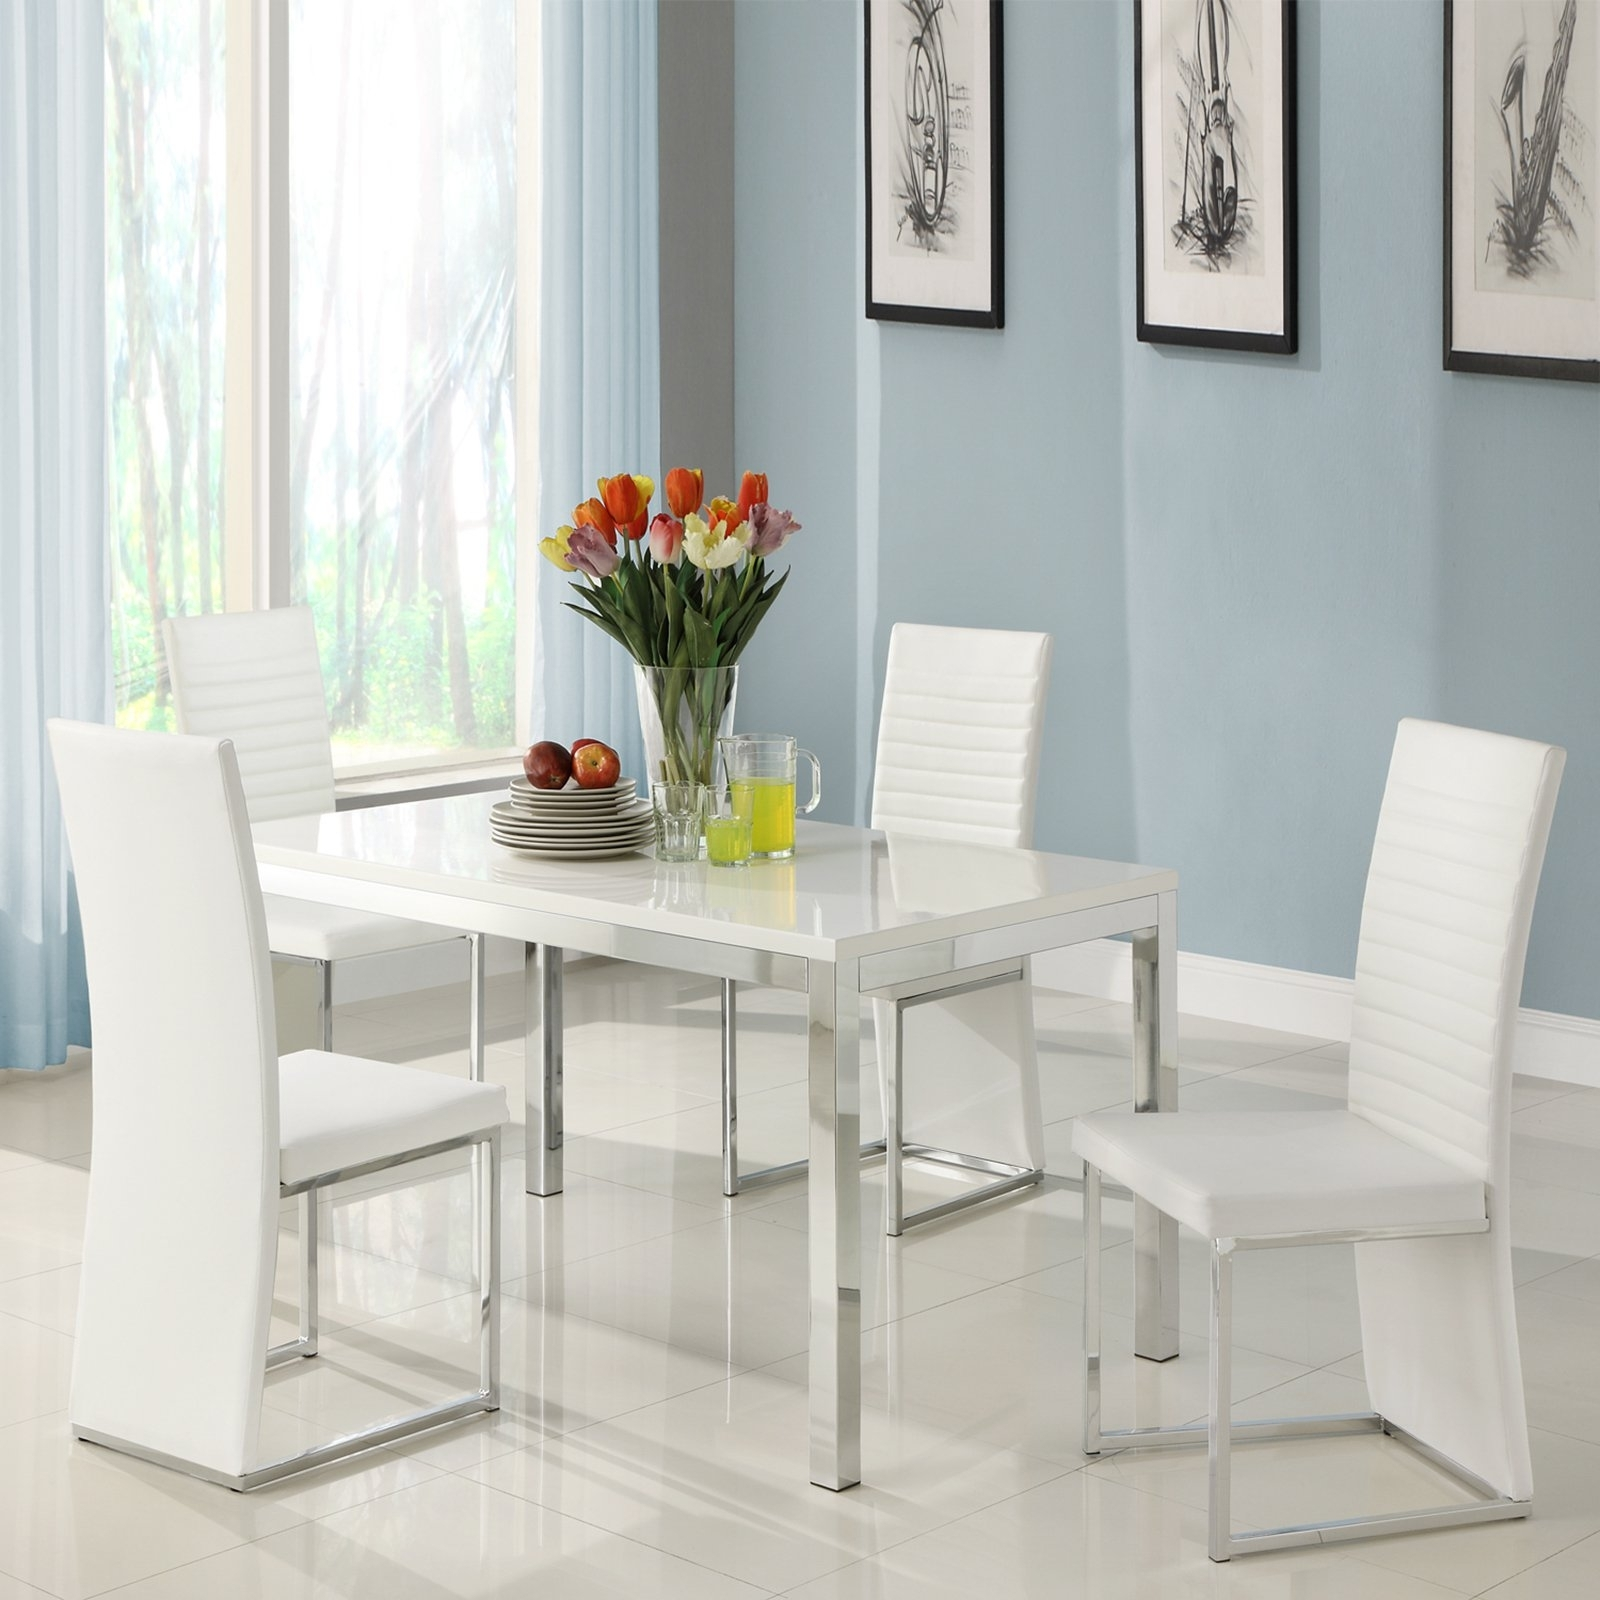 Homelegance Clarice 5 Piece Chrome Dining Table Set – Modern White In Newest Chrome Dining Sets (View 10 of 25)